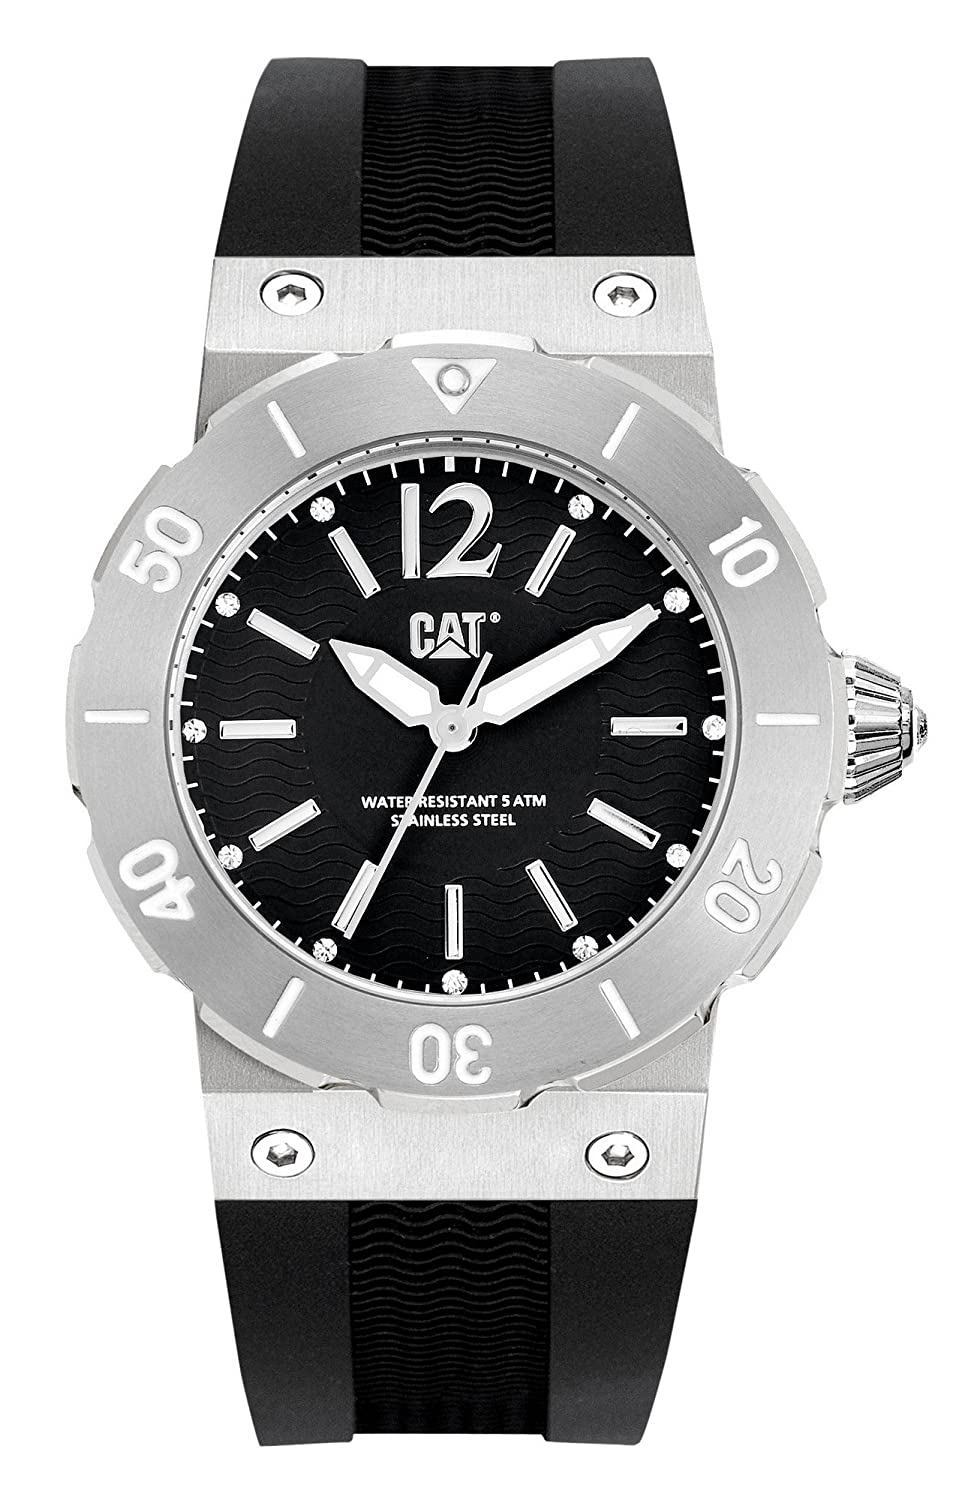 Amazon.com: CAT RELOJES - D2 341 21 131 - DAMA - ACTIVE OCEAN LADY: CAT WATCHES: Watches